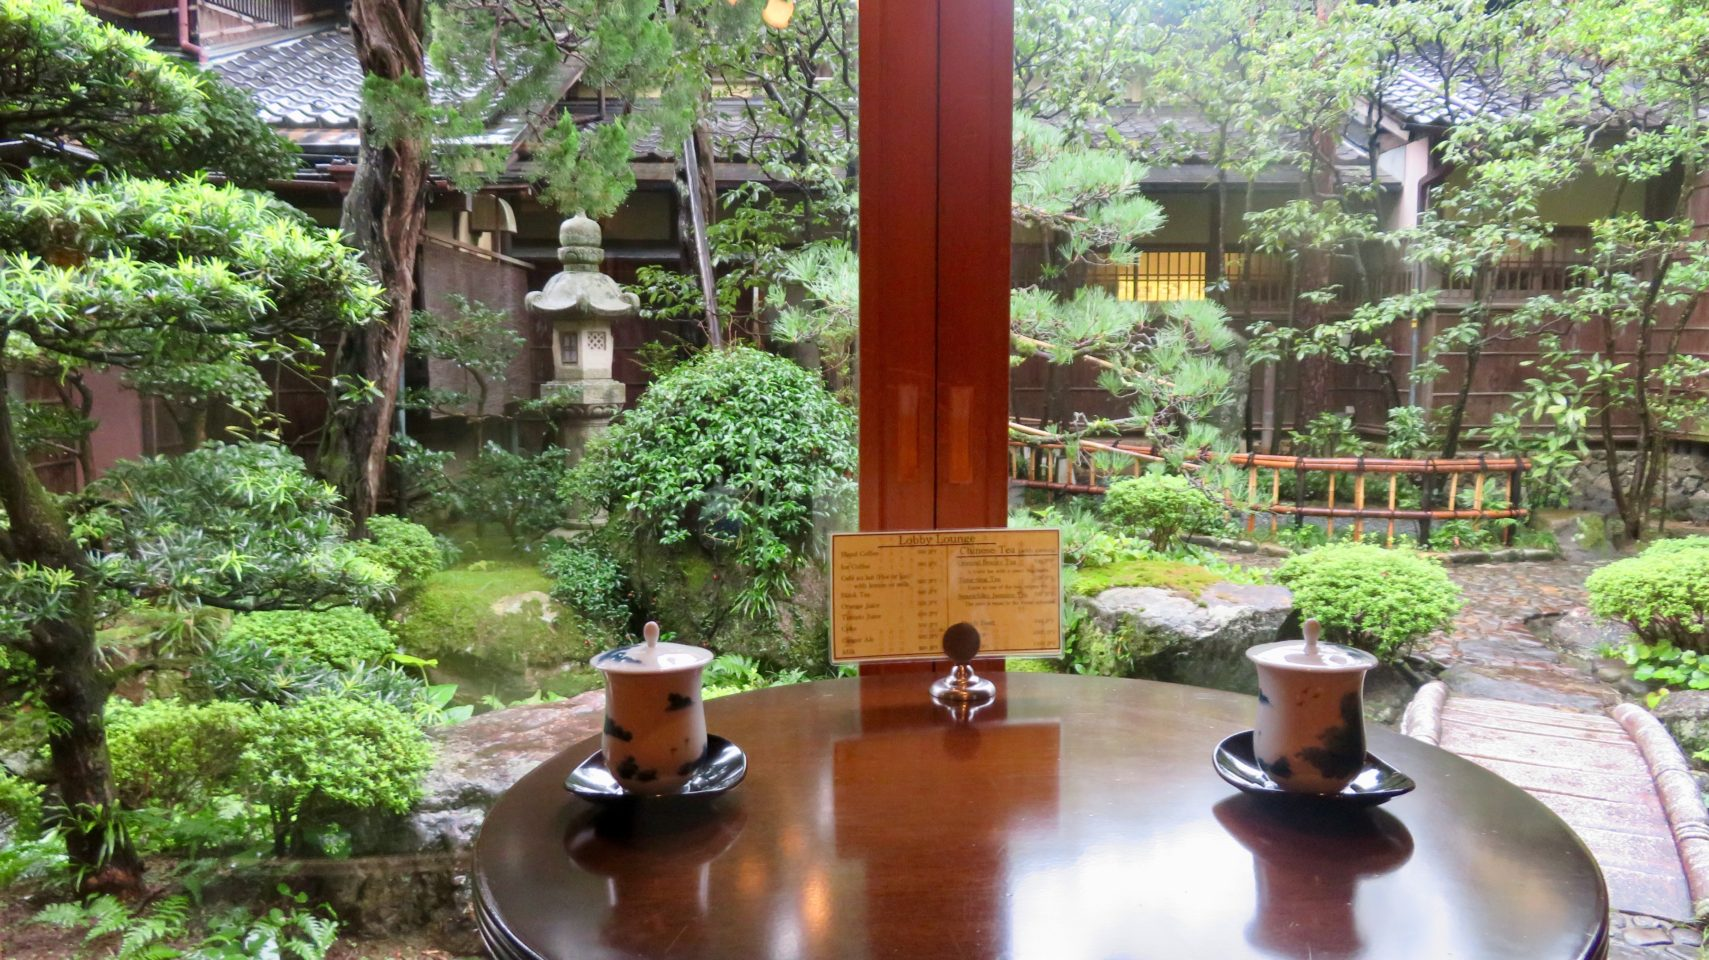 Japan Favorite Experiences ~ View of the garden at Nishimuraya Honkan ryokan